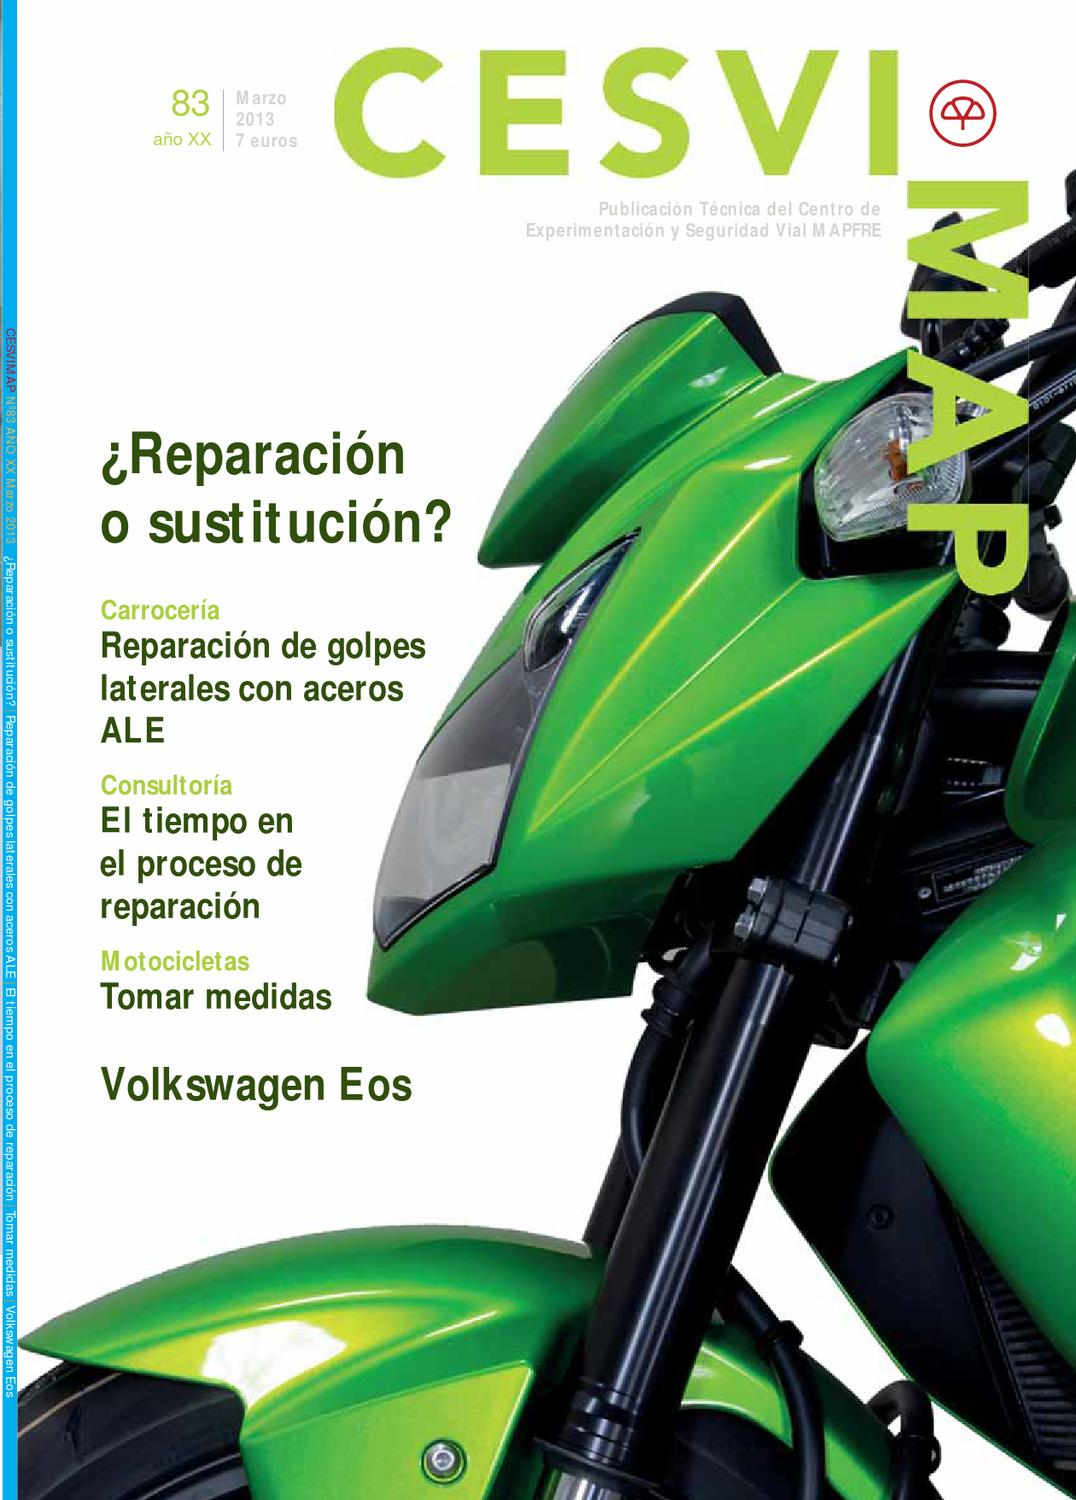 Revista CESVIMAP 83 by CESVIMAP - issuu